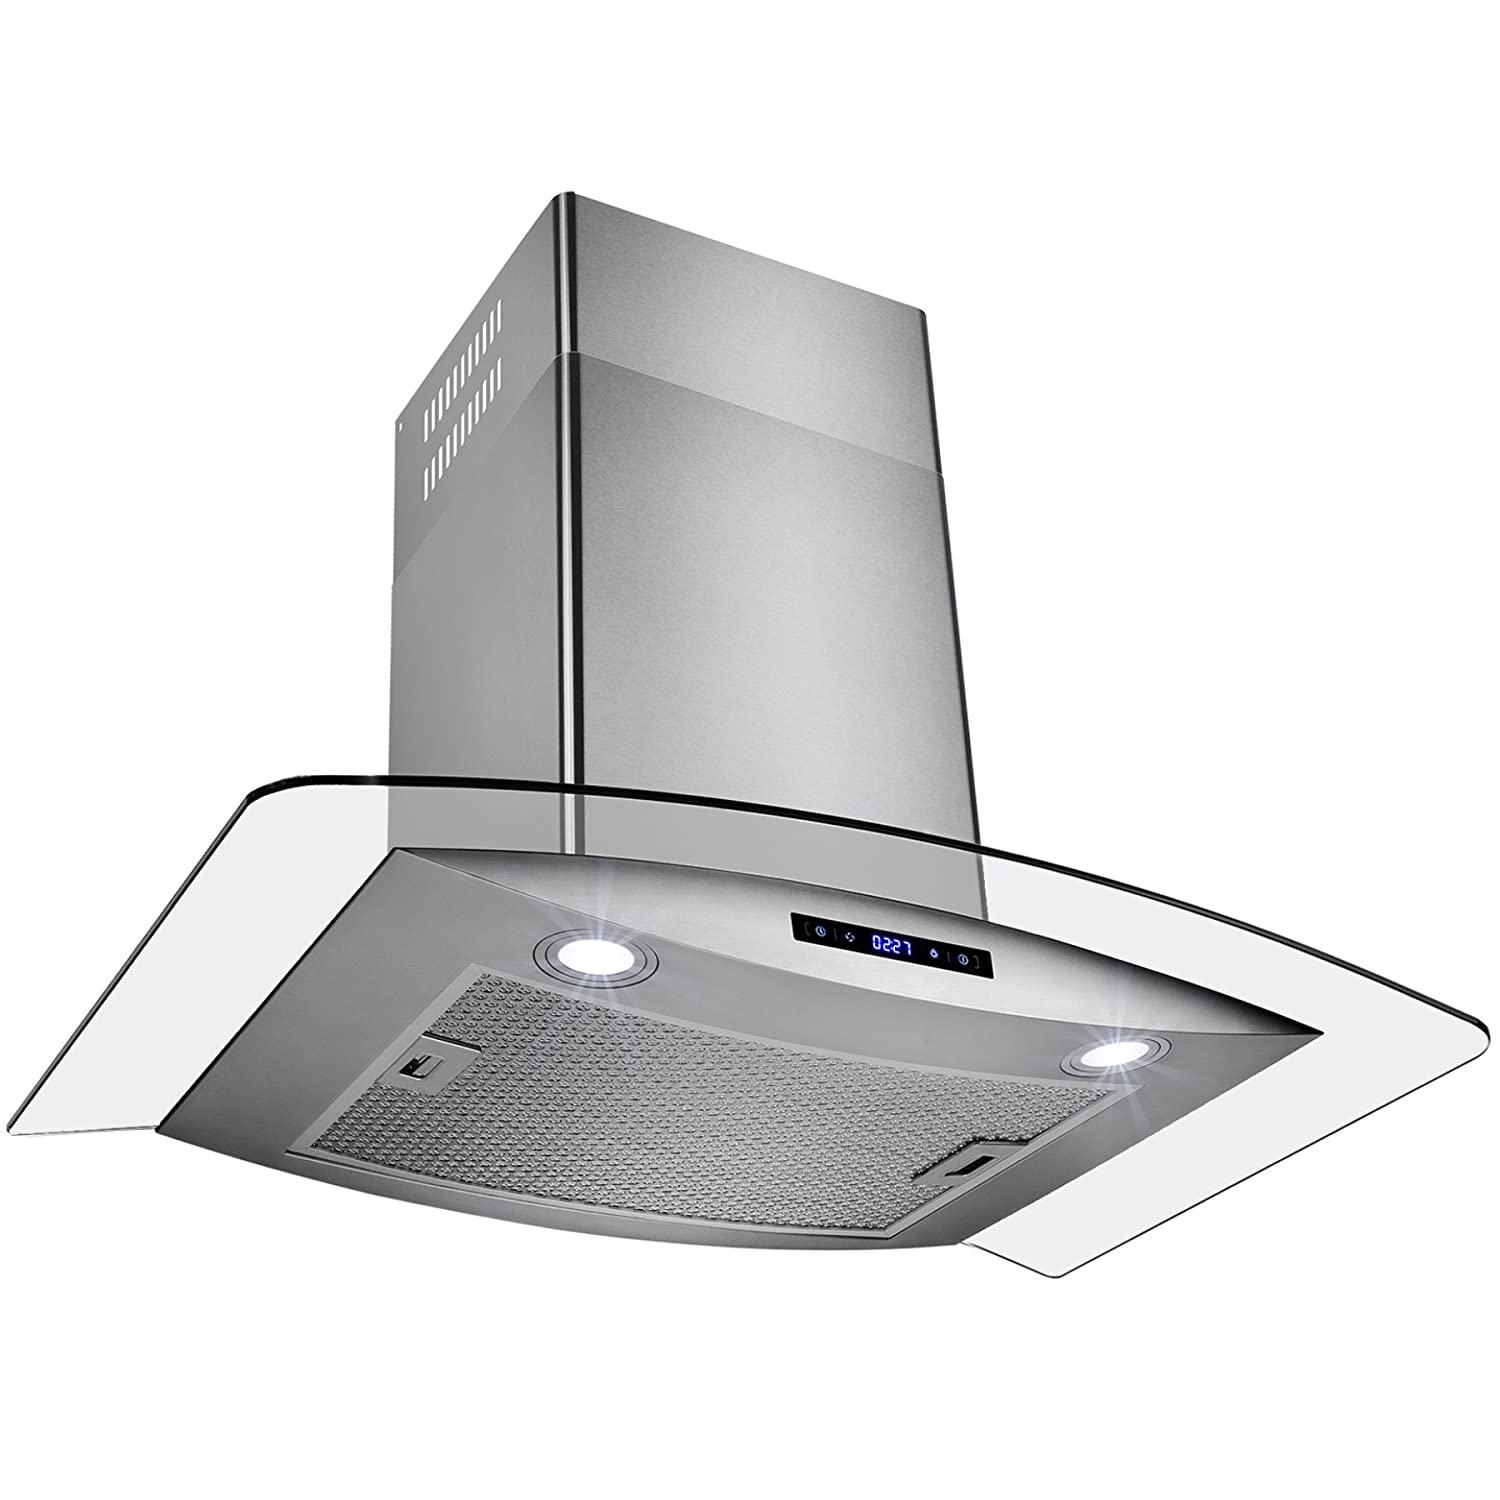 AKDY New 30 European Style Wall Mount Stainless Steel Glass Range Hood Vent Touch Control AZ-688/CS14 30